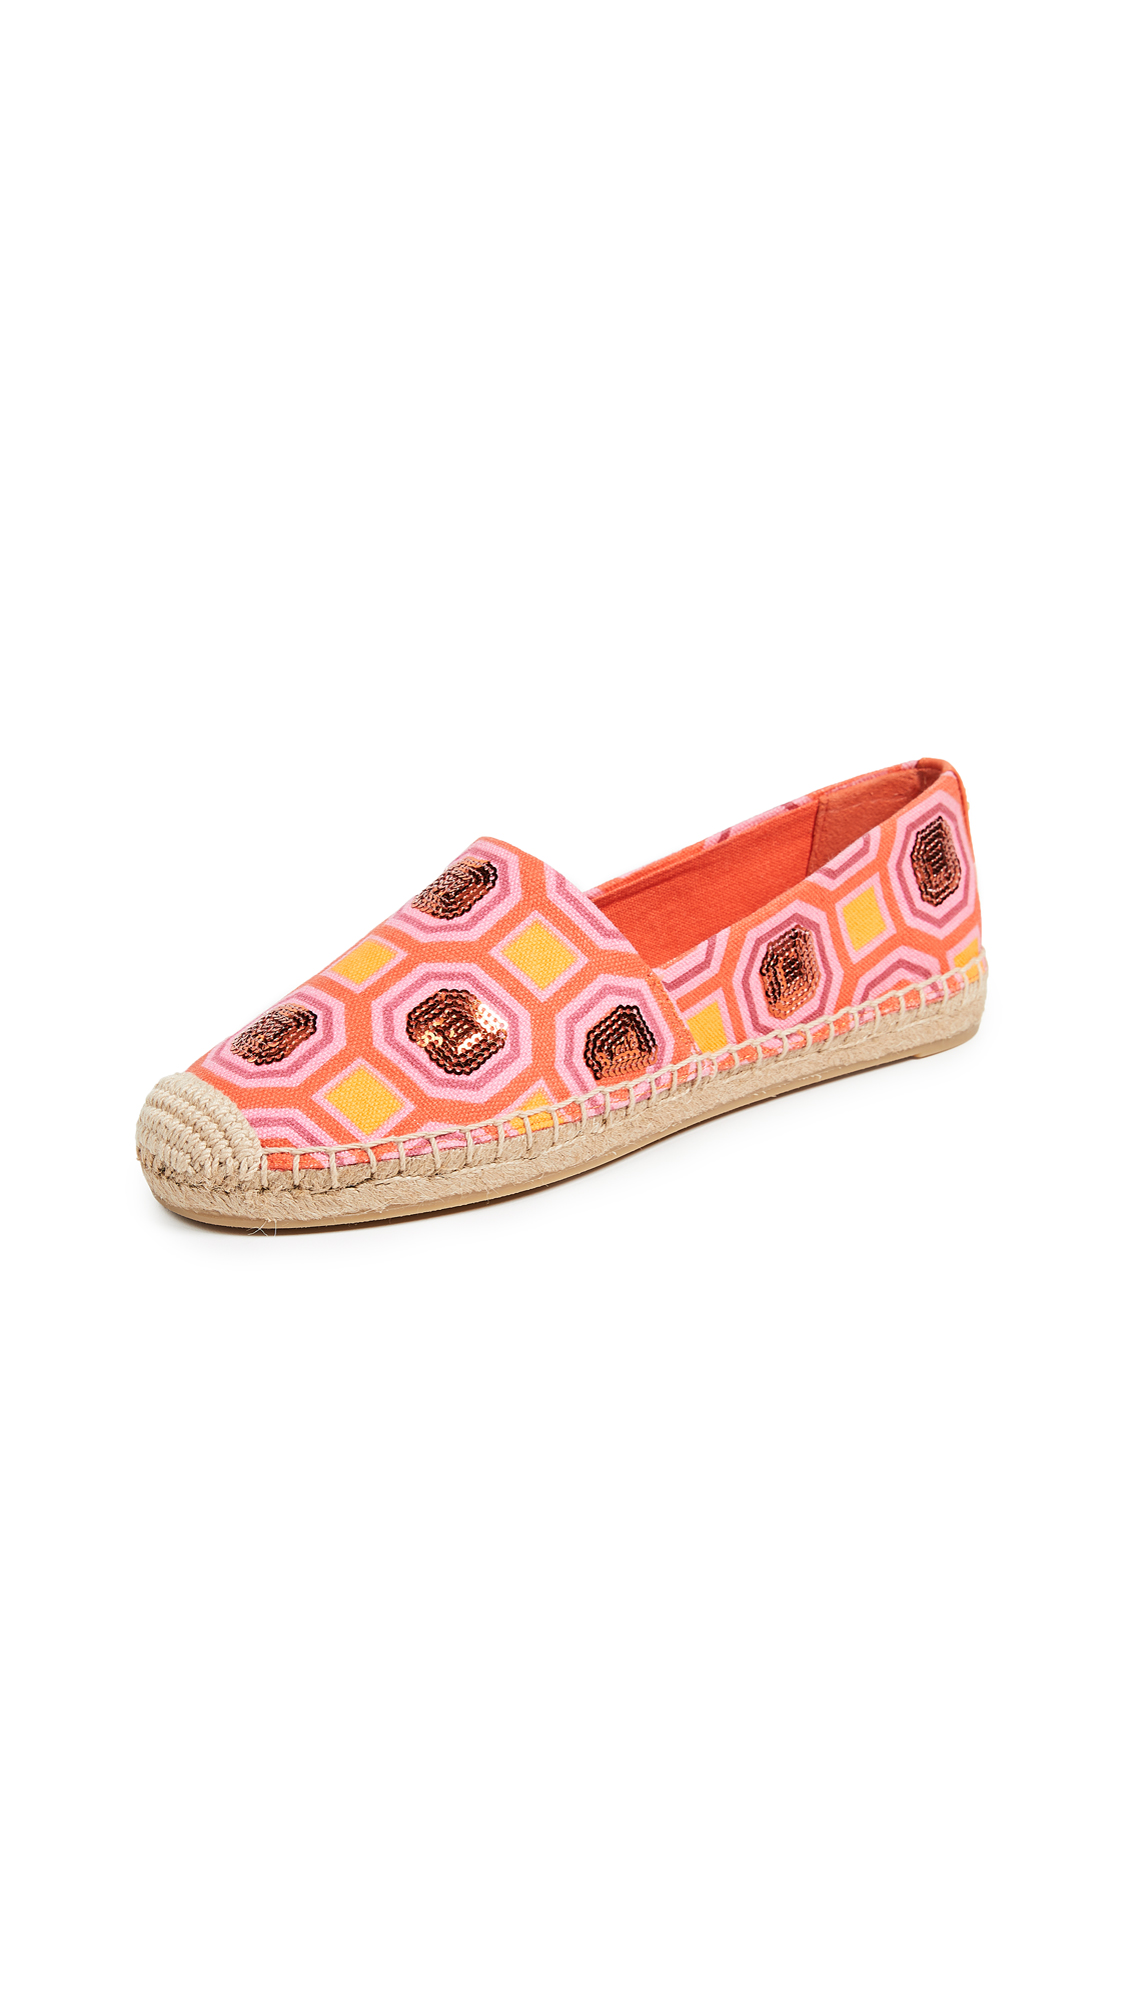 61afbe9c553 Tory Burch Cecily Sequin Embellished Espadrille In Octagon Light Chambray